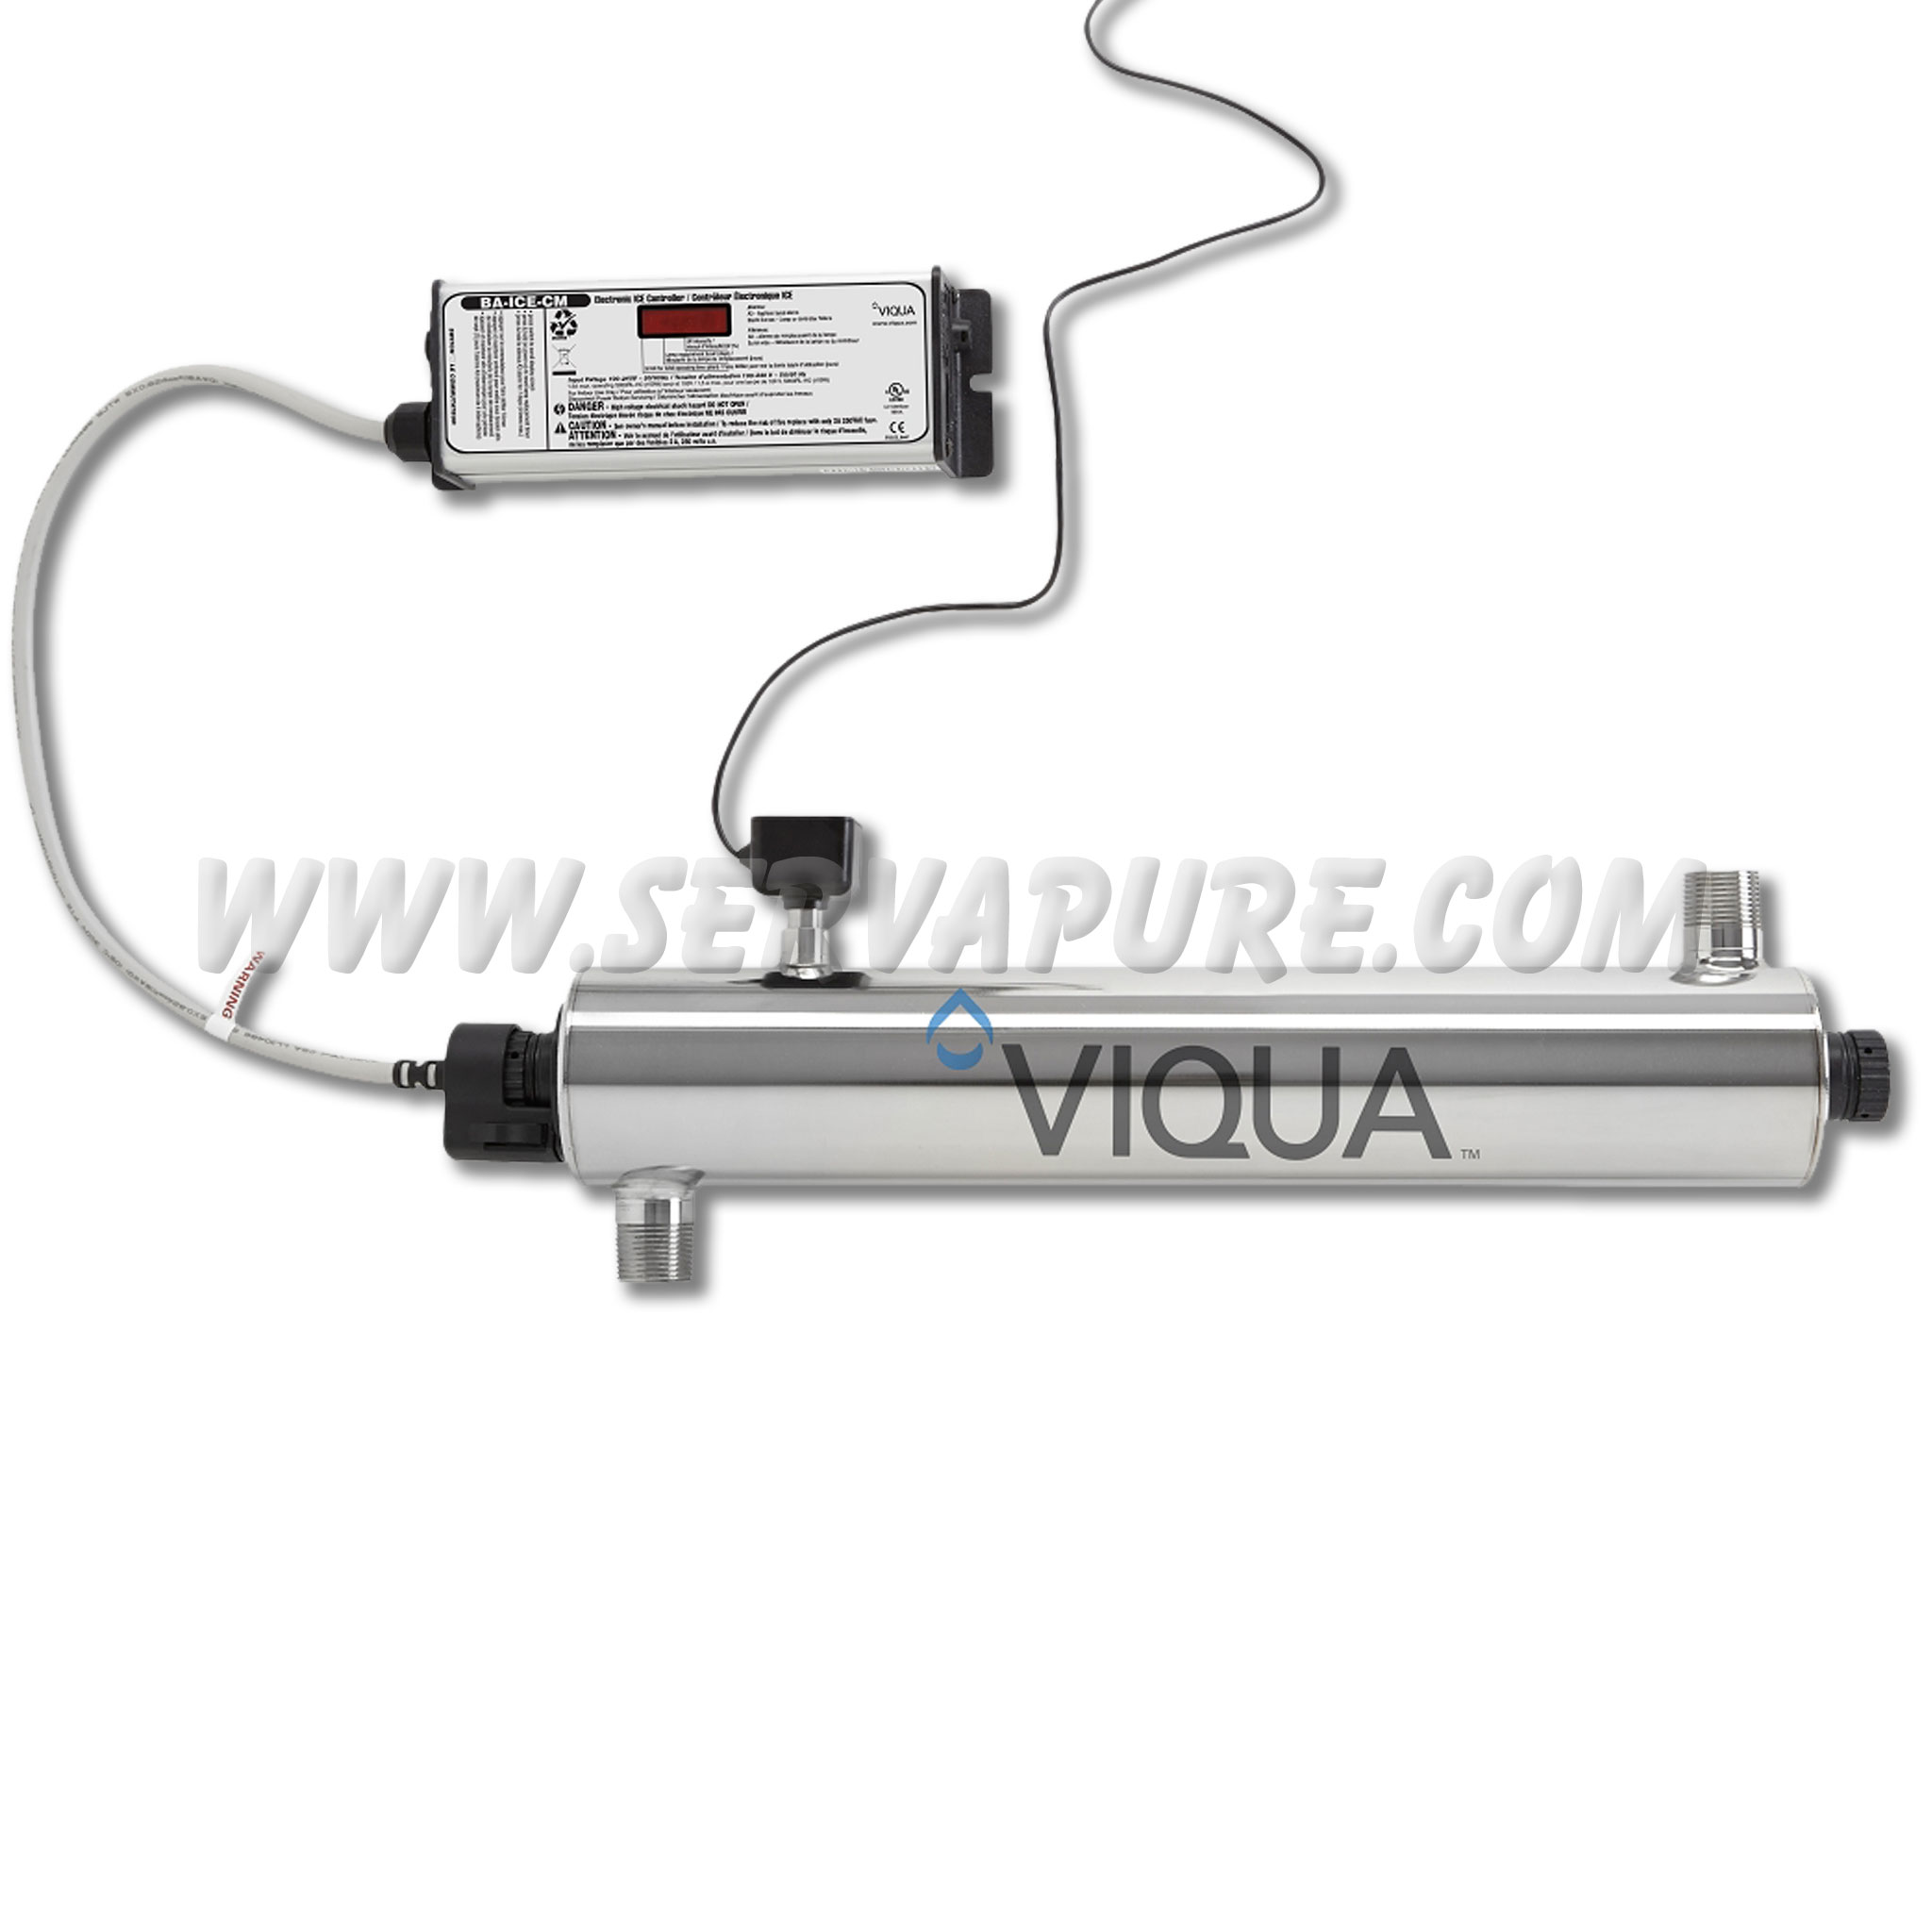 Viqua Vh410m Whole House Uv System 18 Gpm With Sensor